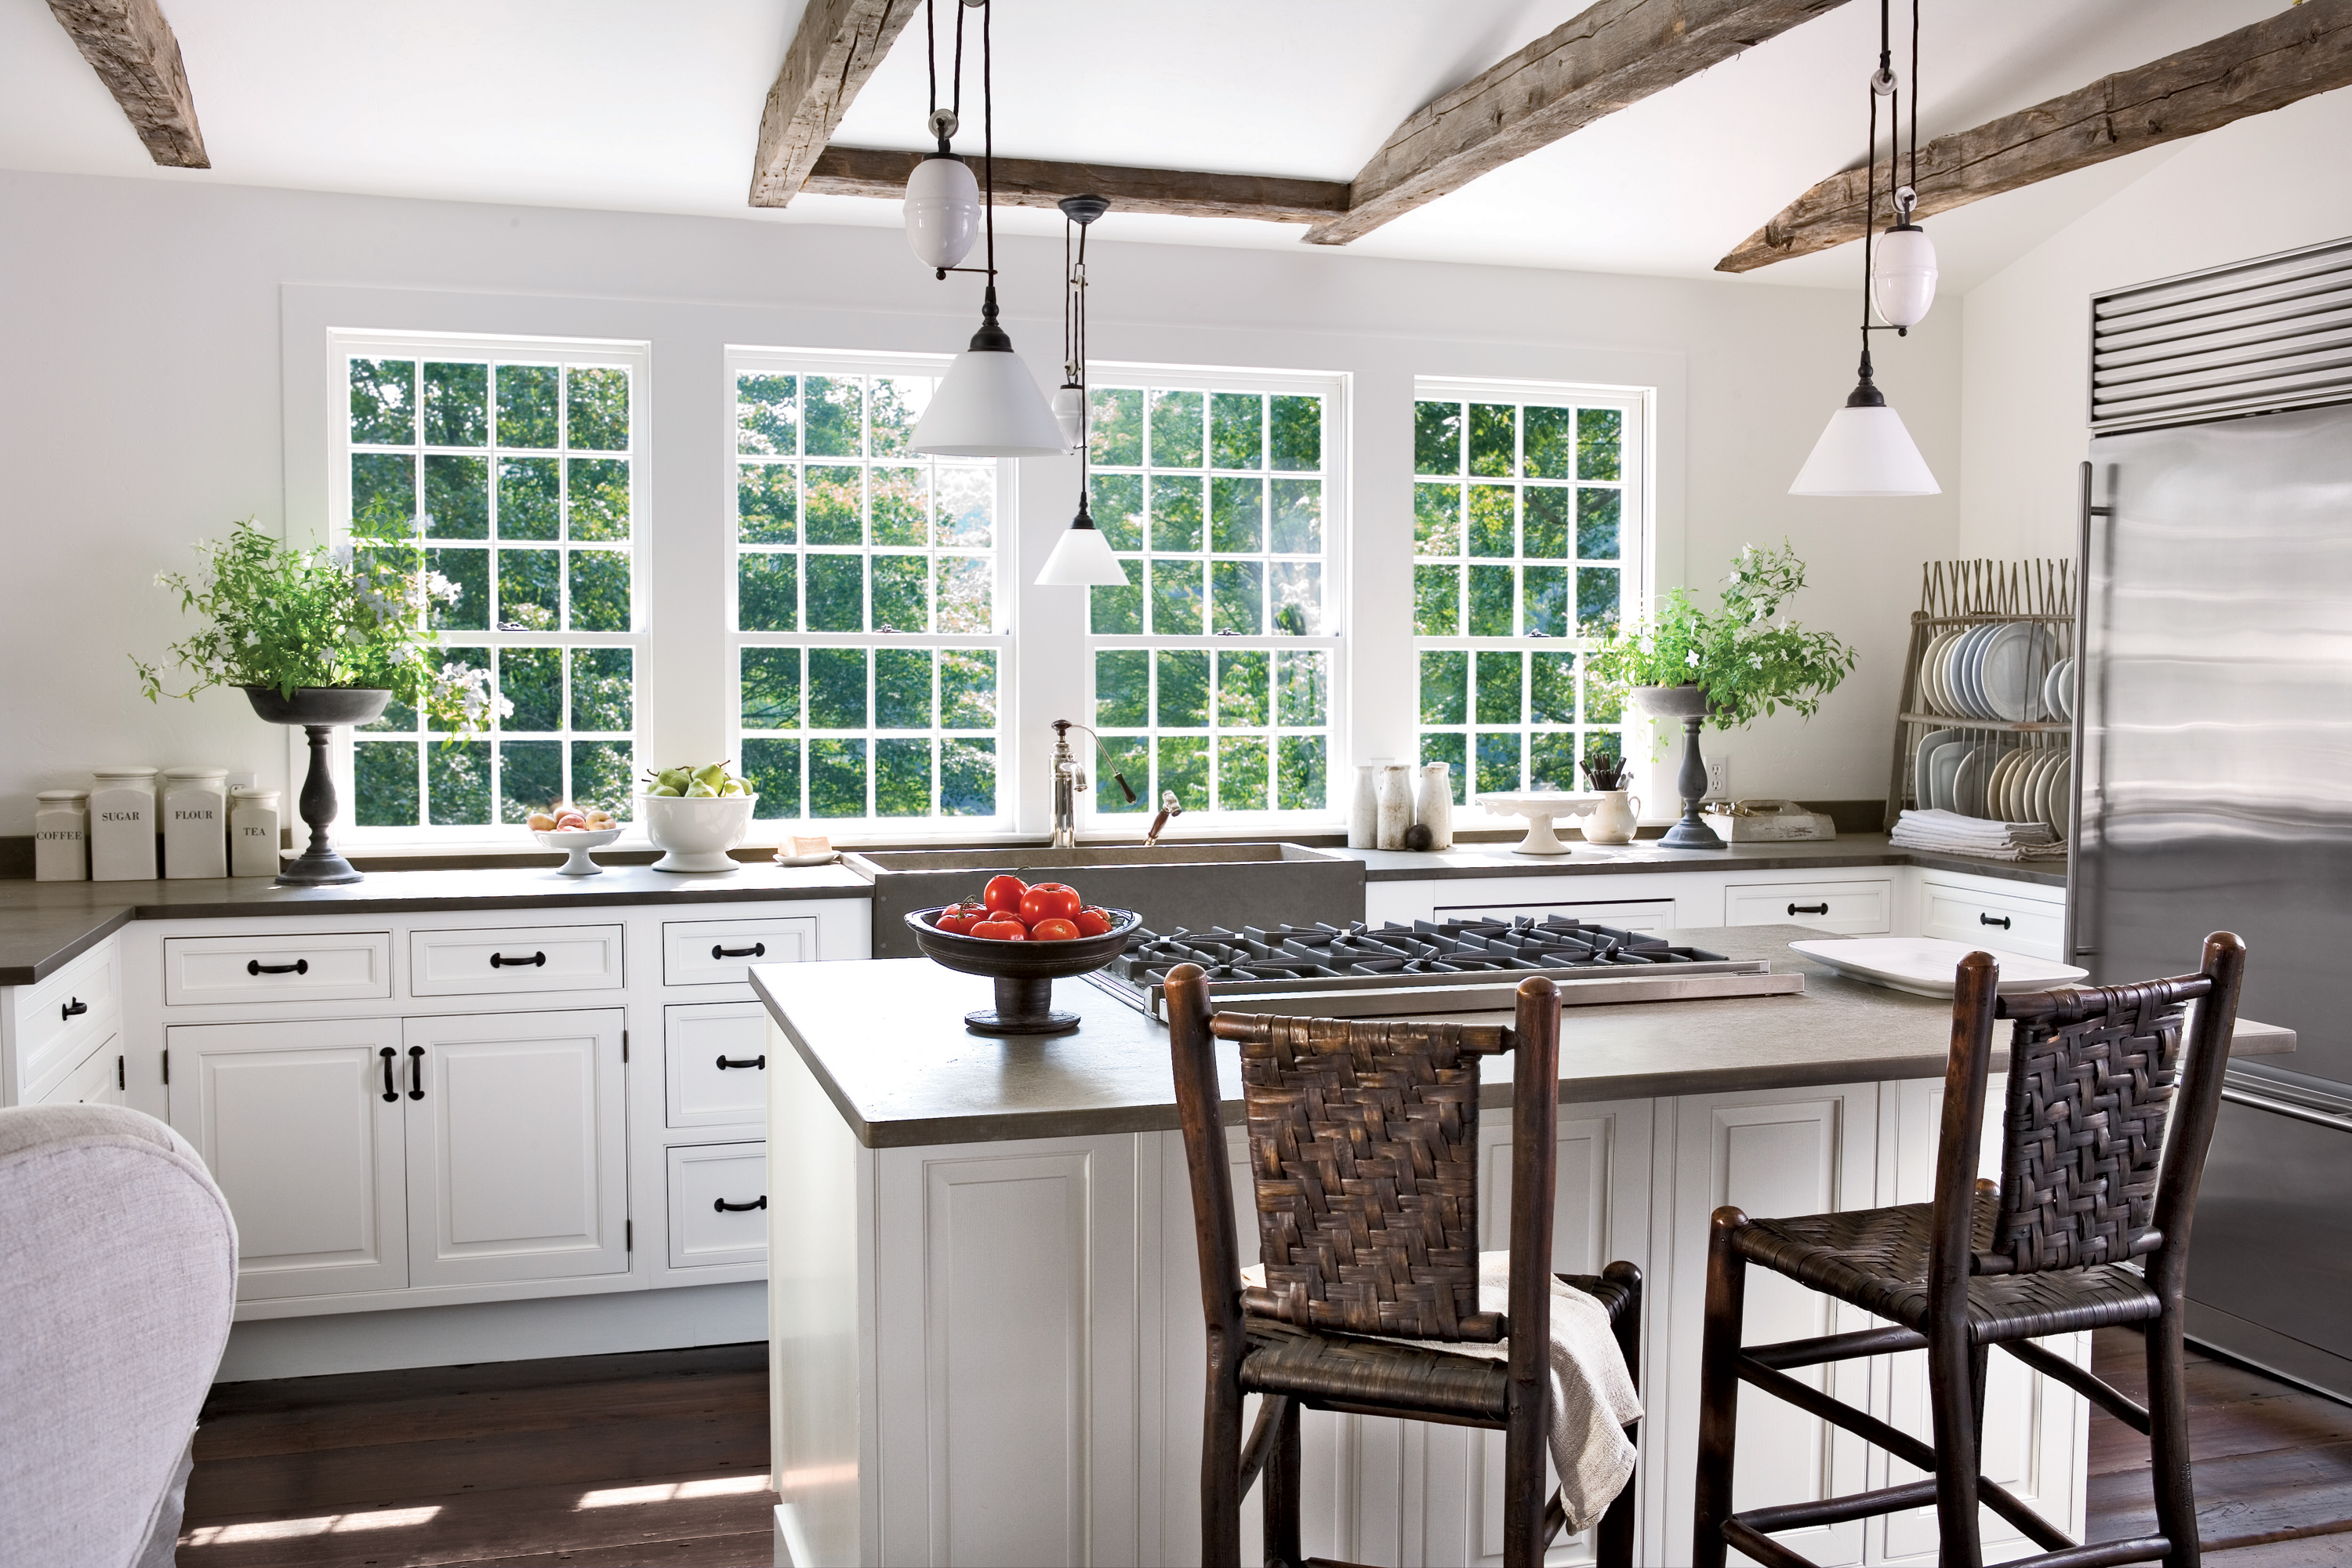 White Country Kitchen Images 24 best white kitchens - pictures of white kitchen design ideas